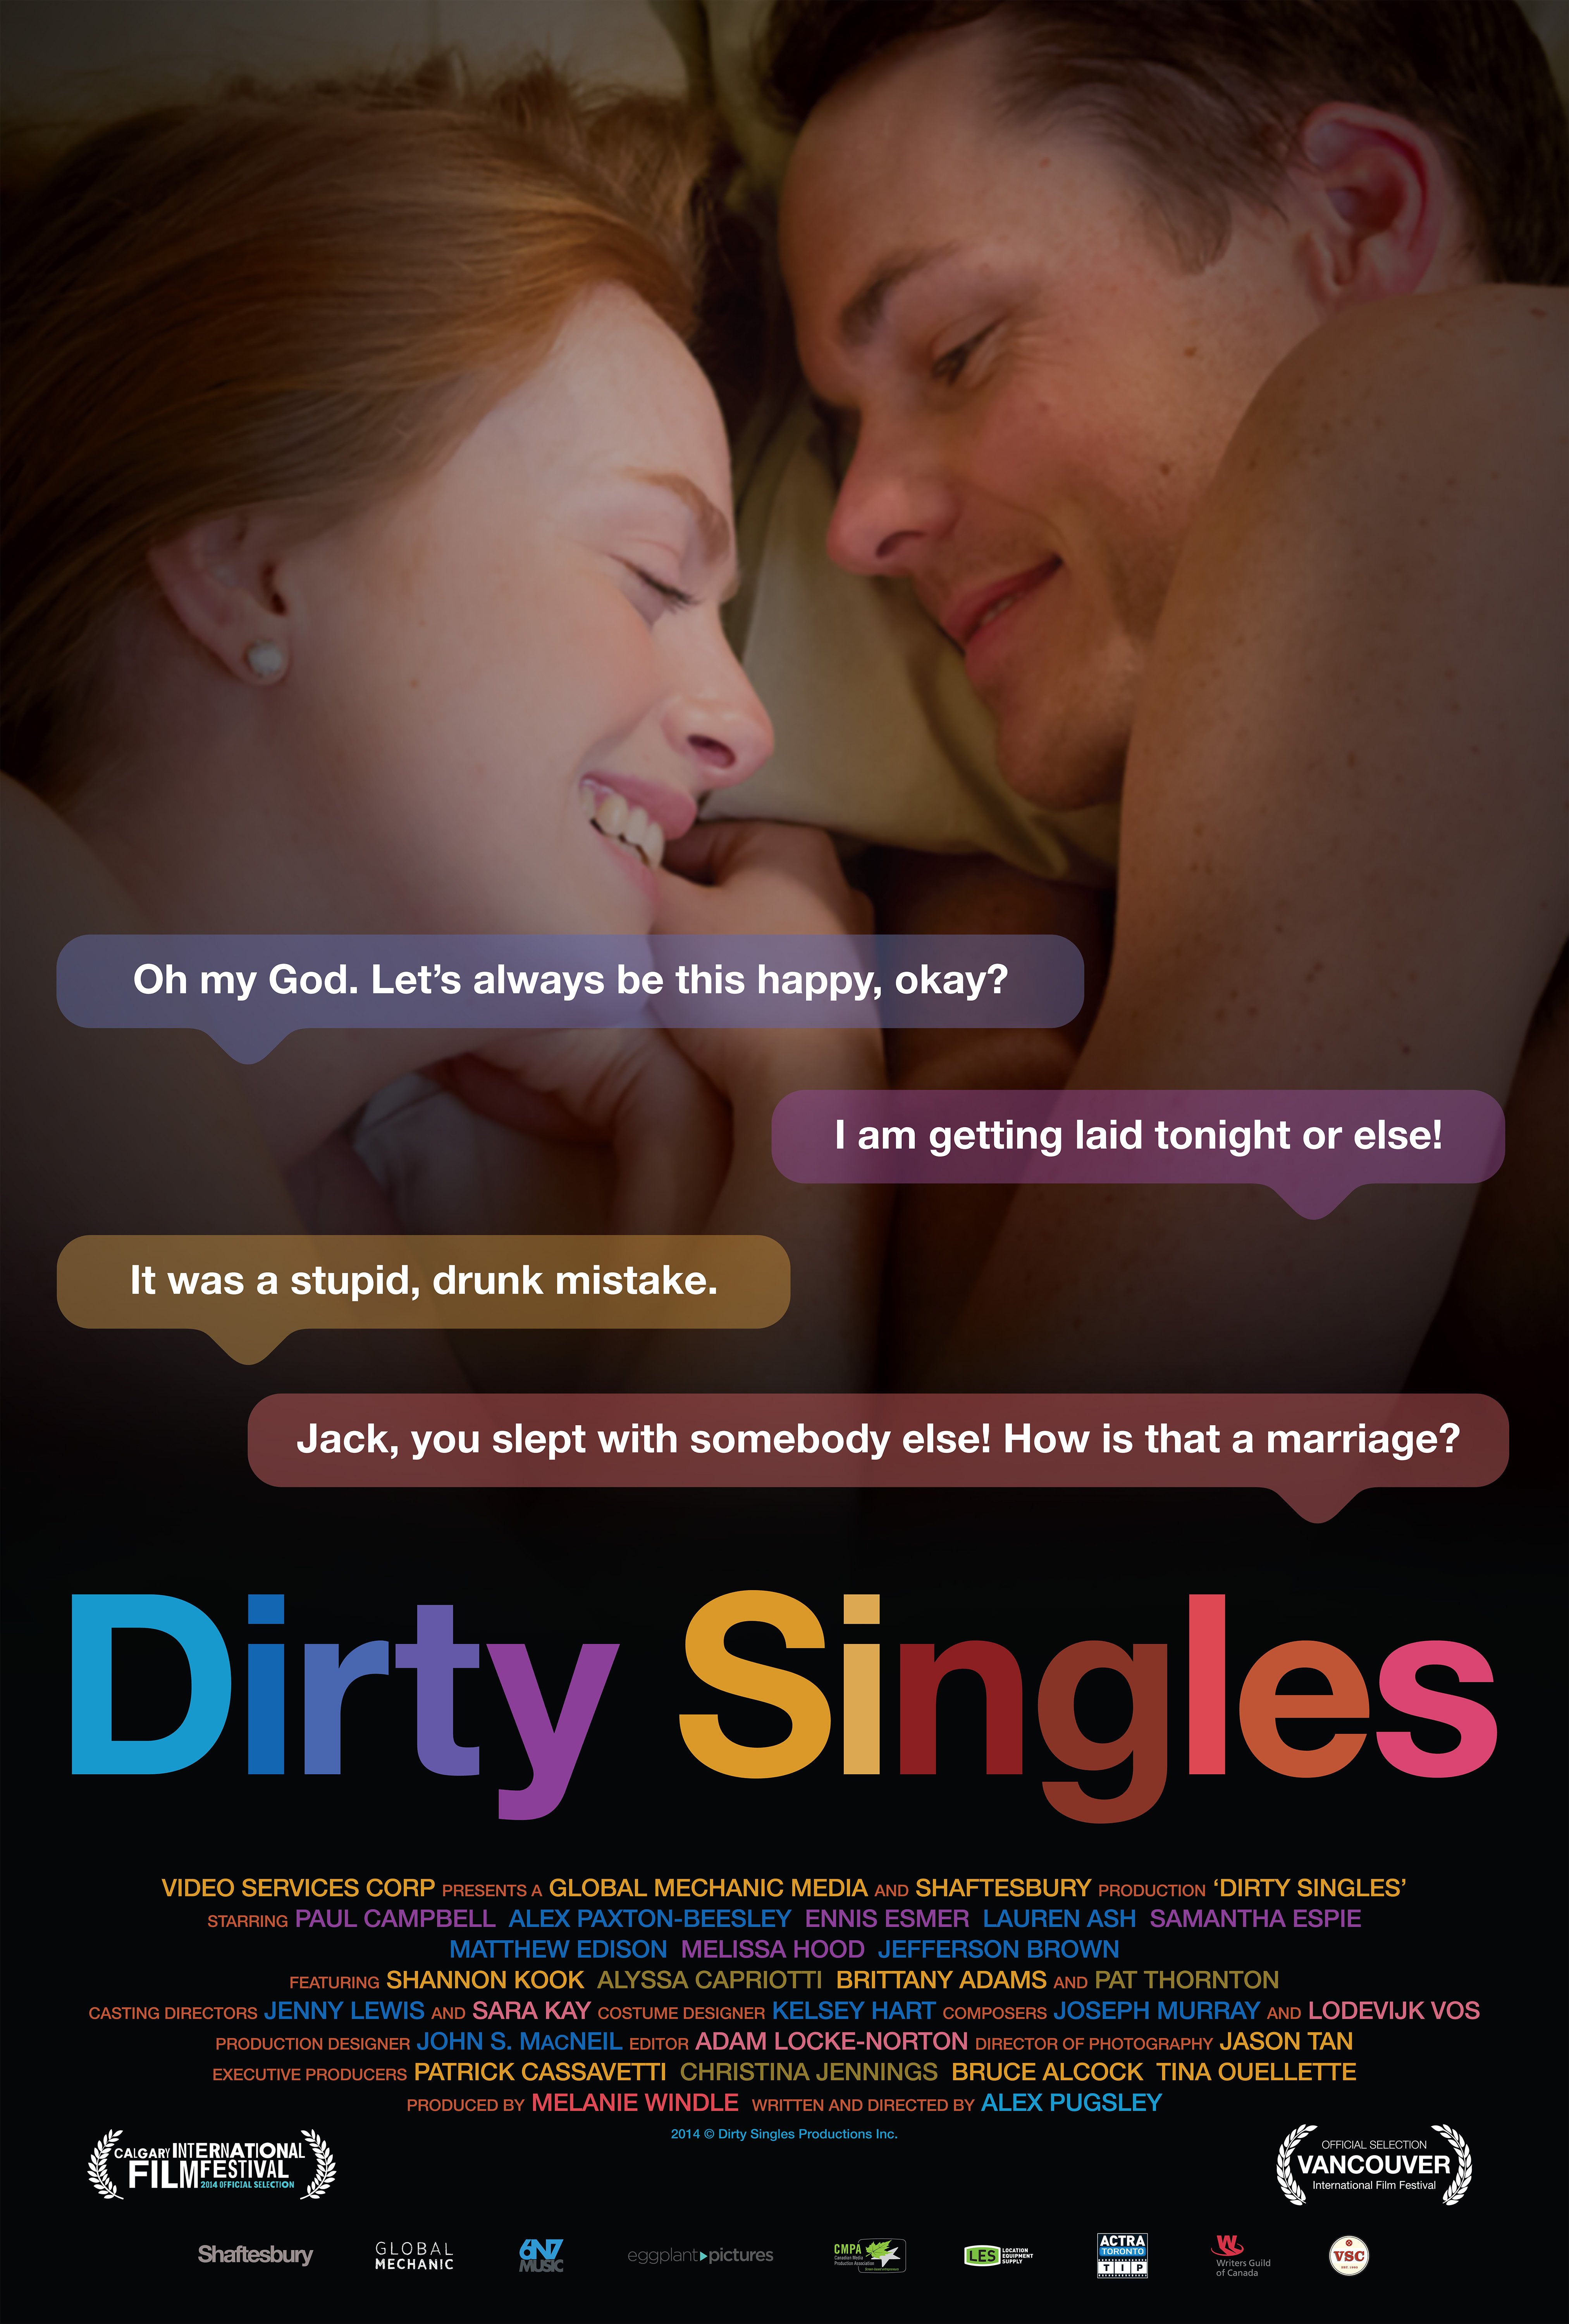 Paul Campbell and Alex Paxton-Beesley in Dirty Singles (2014)